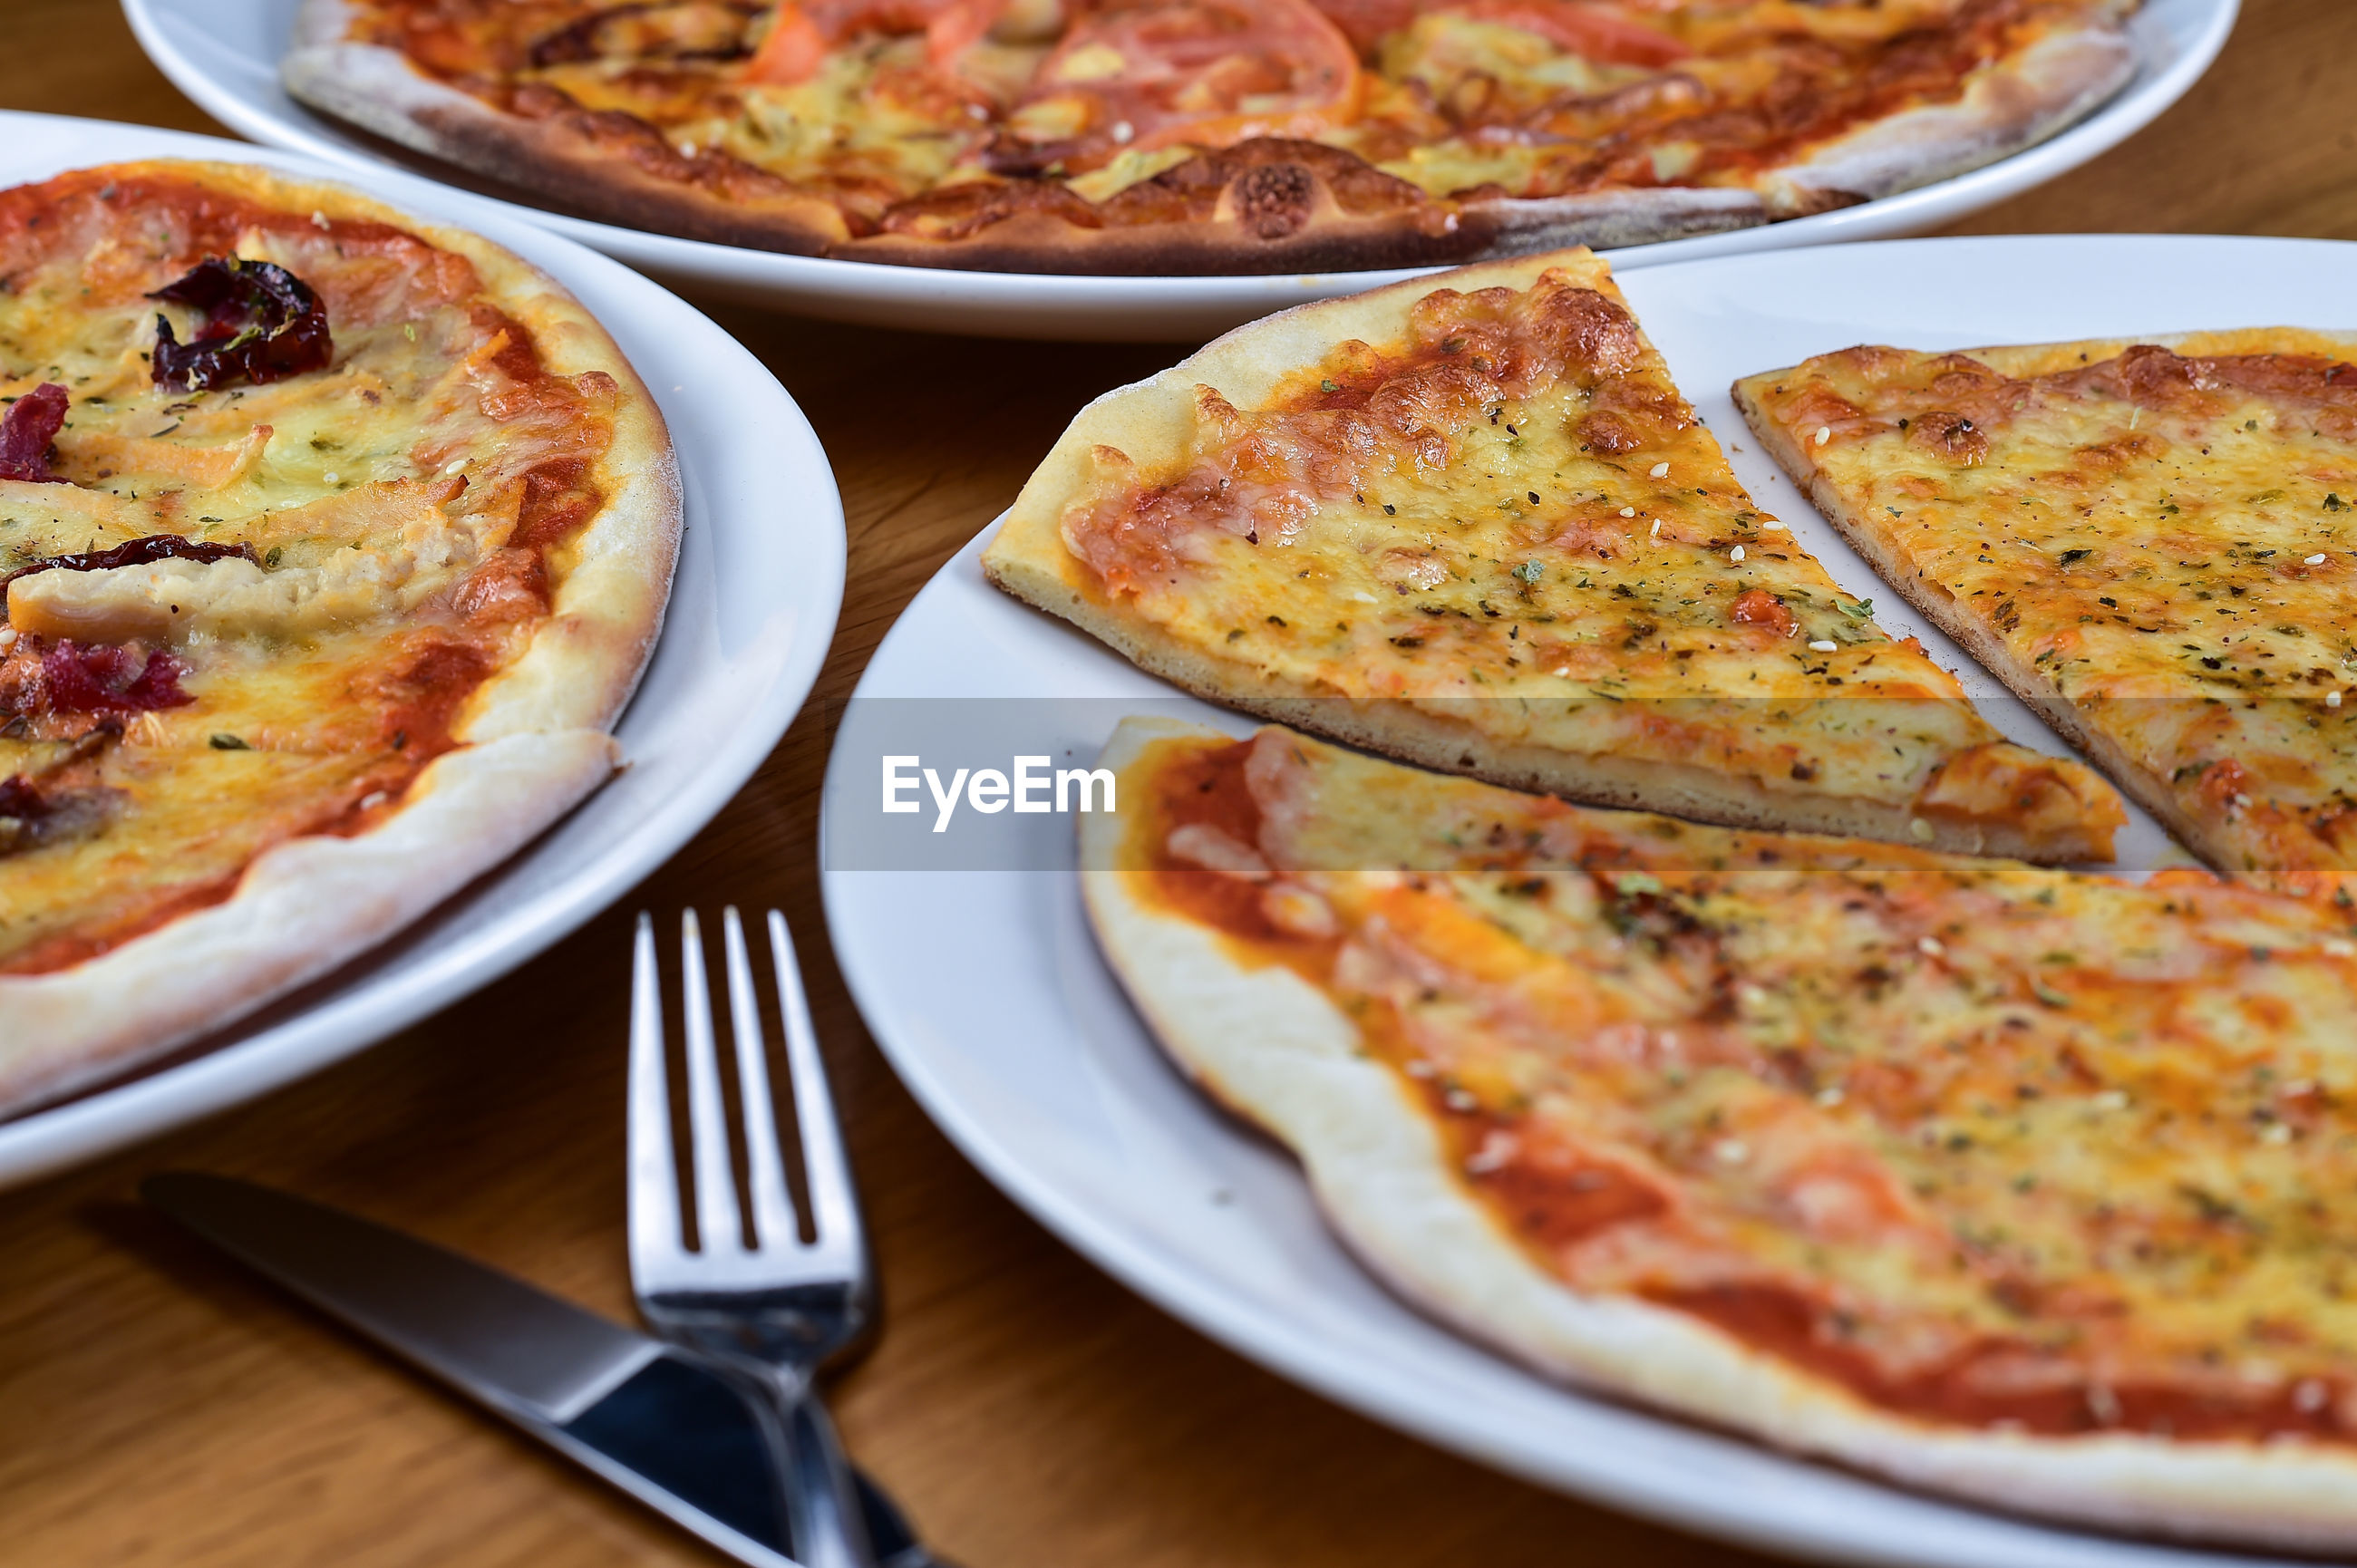 High angle view of various pizza in plates on table